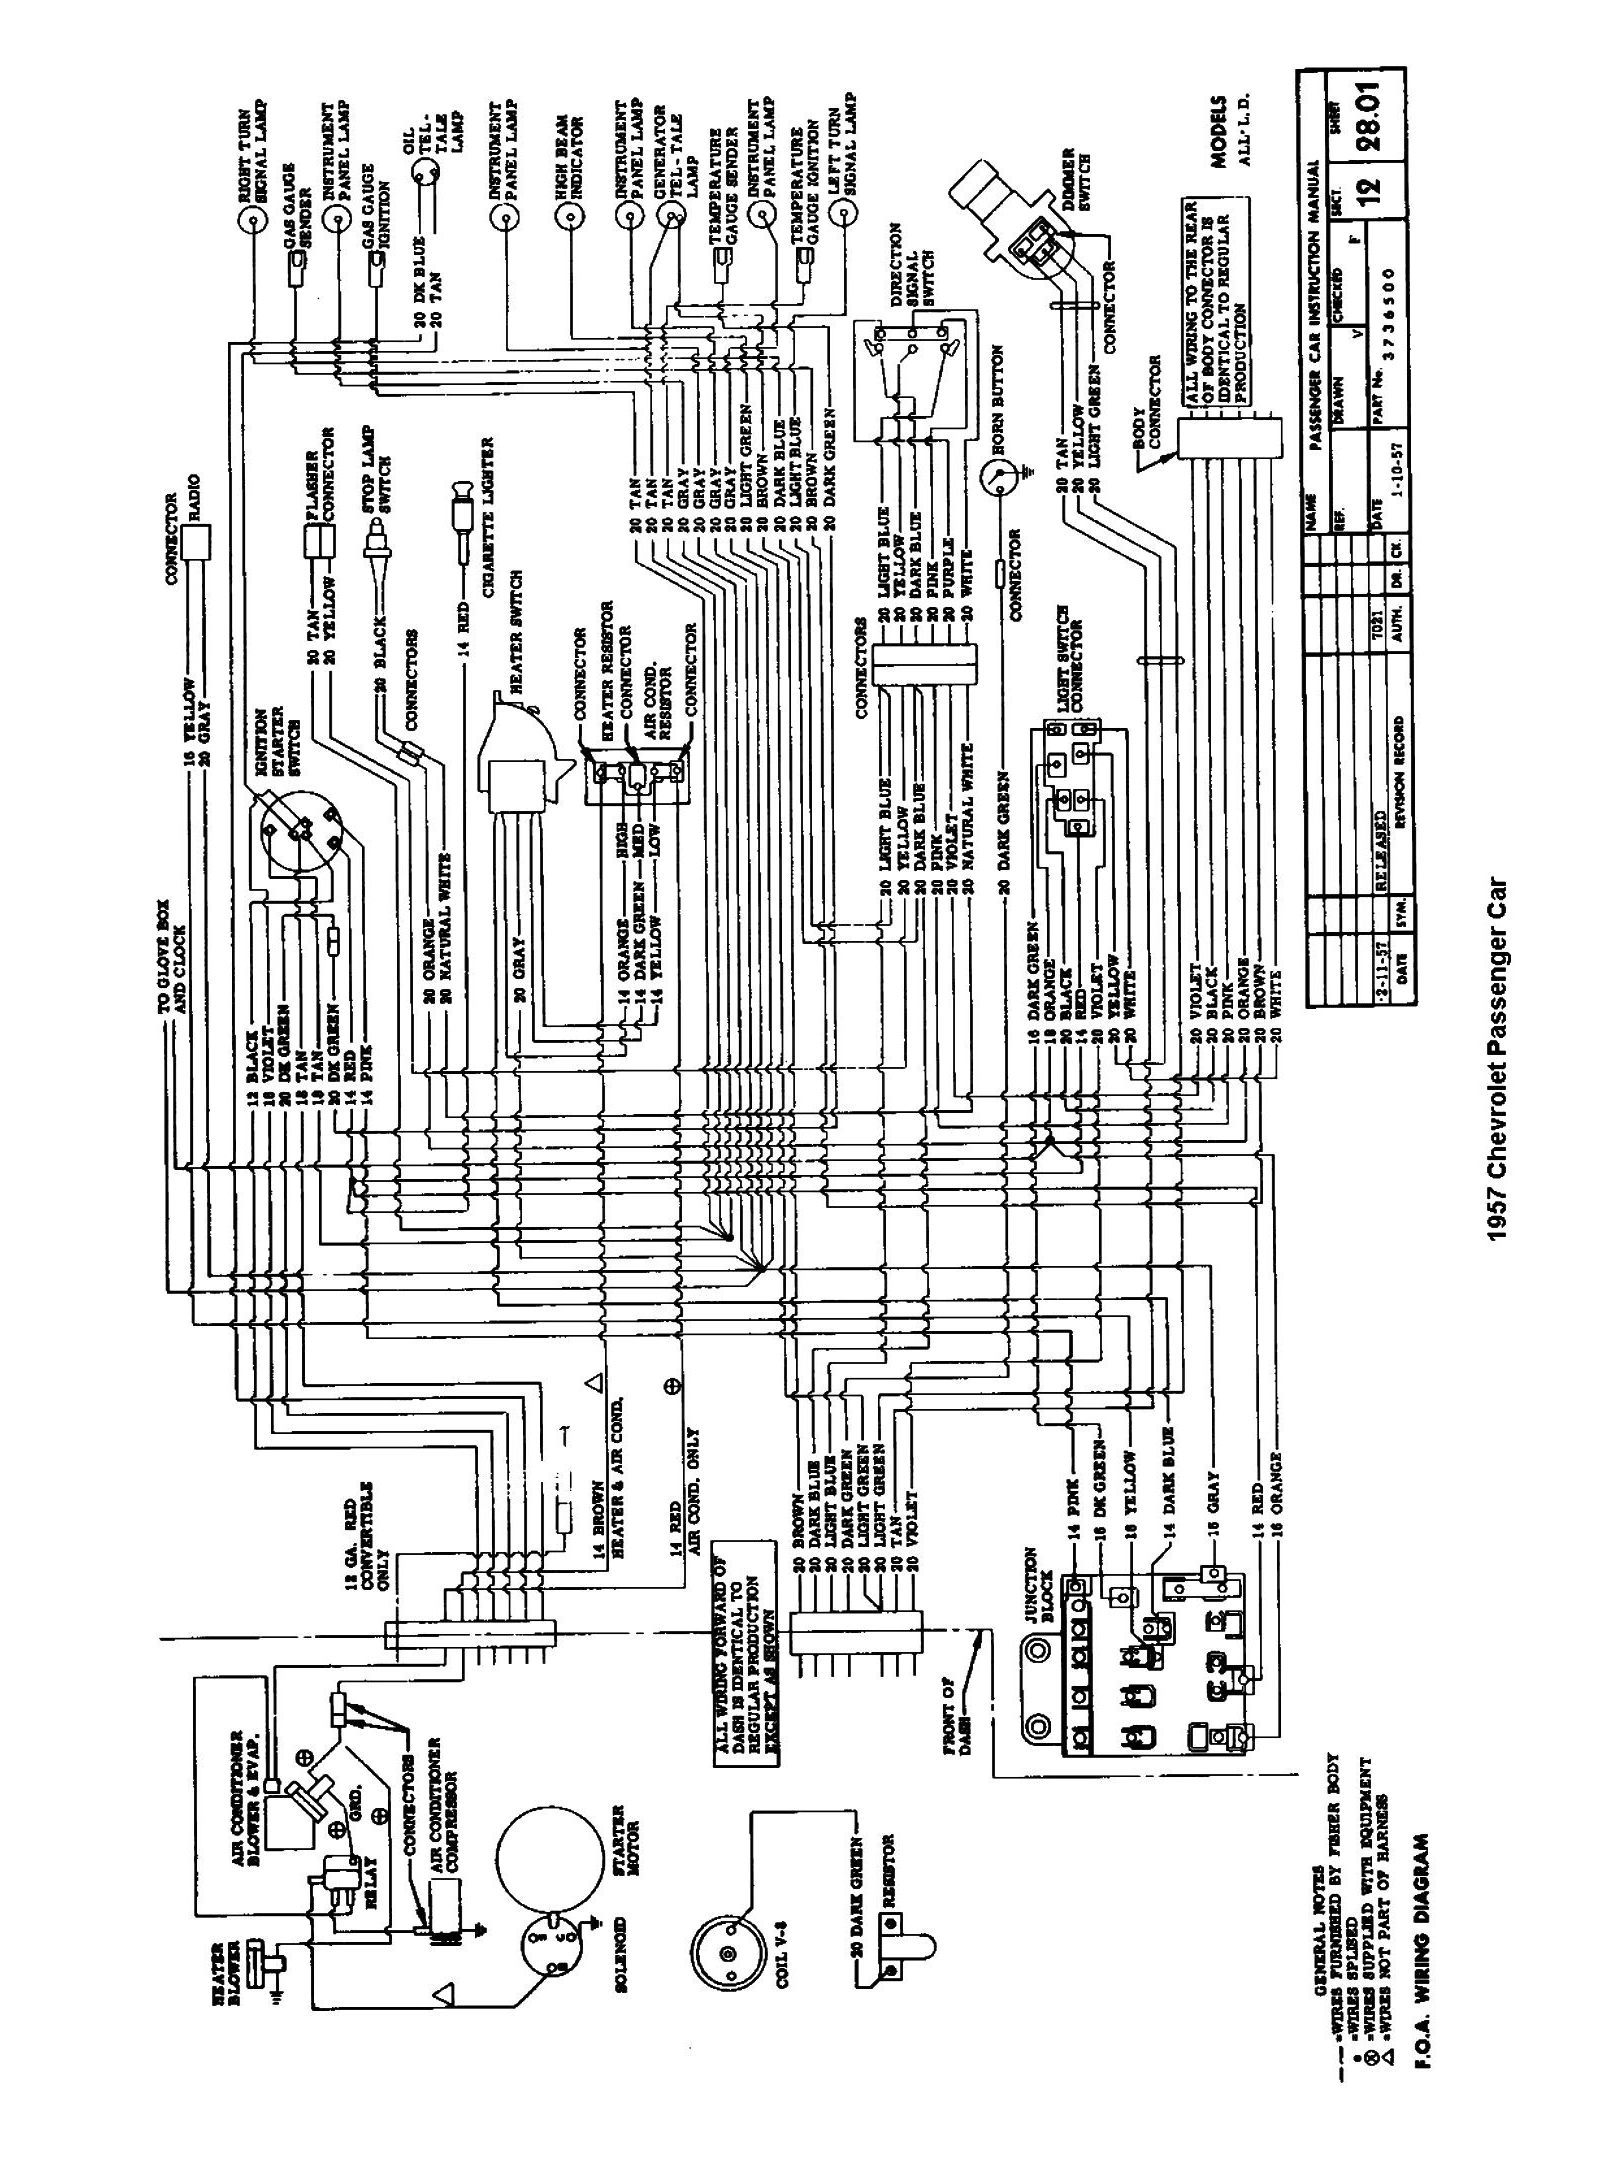 1965 Chevy Truck Turn Signal Wiring Diagram - Residential Electrical ...